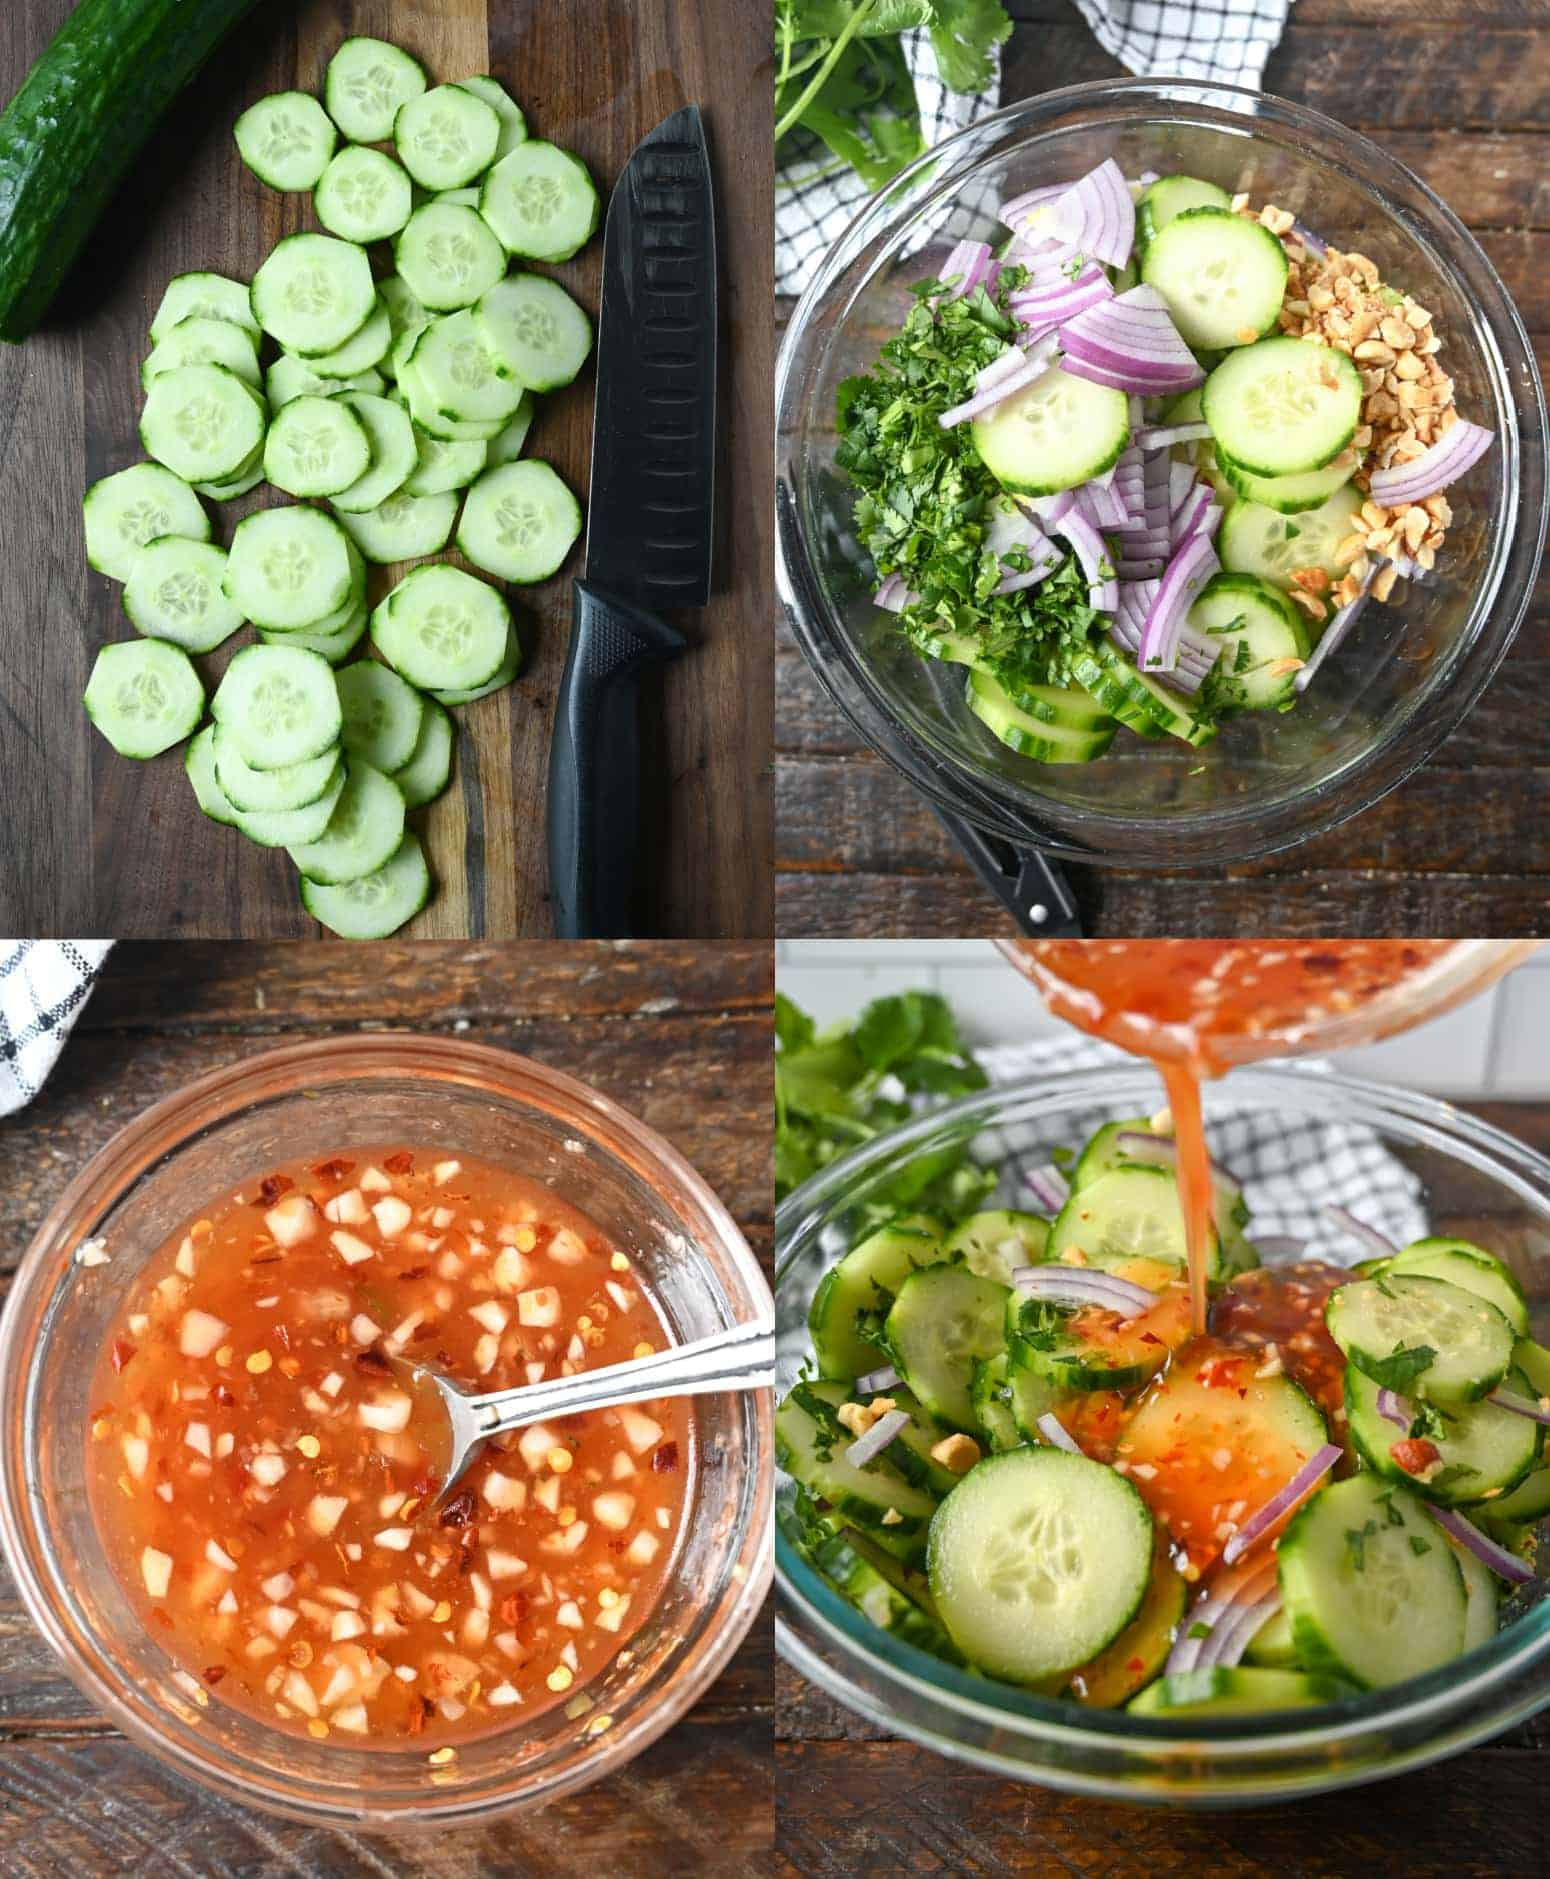 Four process photos. First one, sliced cucumbers on a cutting board. Second one, sliced cucumbers, red onions, peanuts and cilantro all in a bowl ready to be mixed. Third one, sauce mixture all mixed together in a small bowl. Fourth one, sauce being poured on top of the salad.